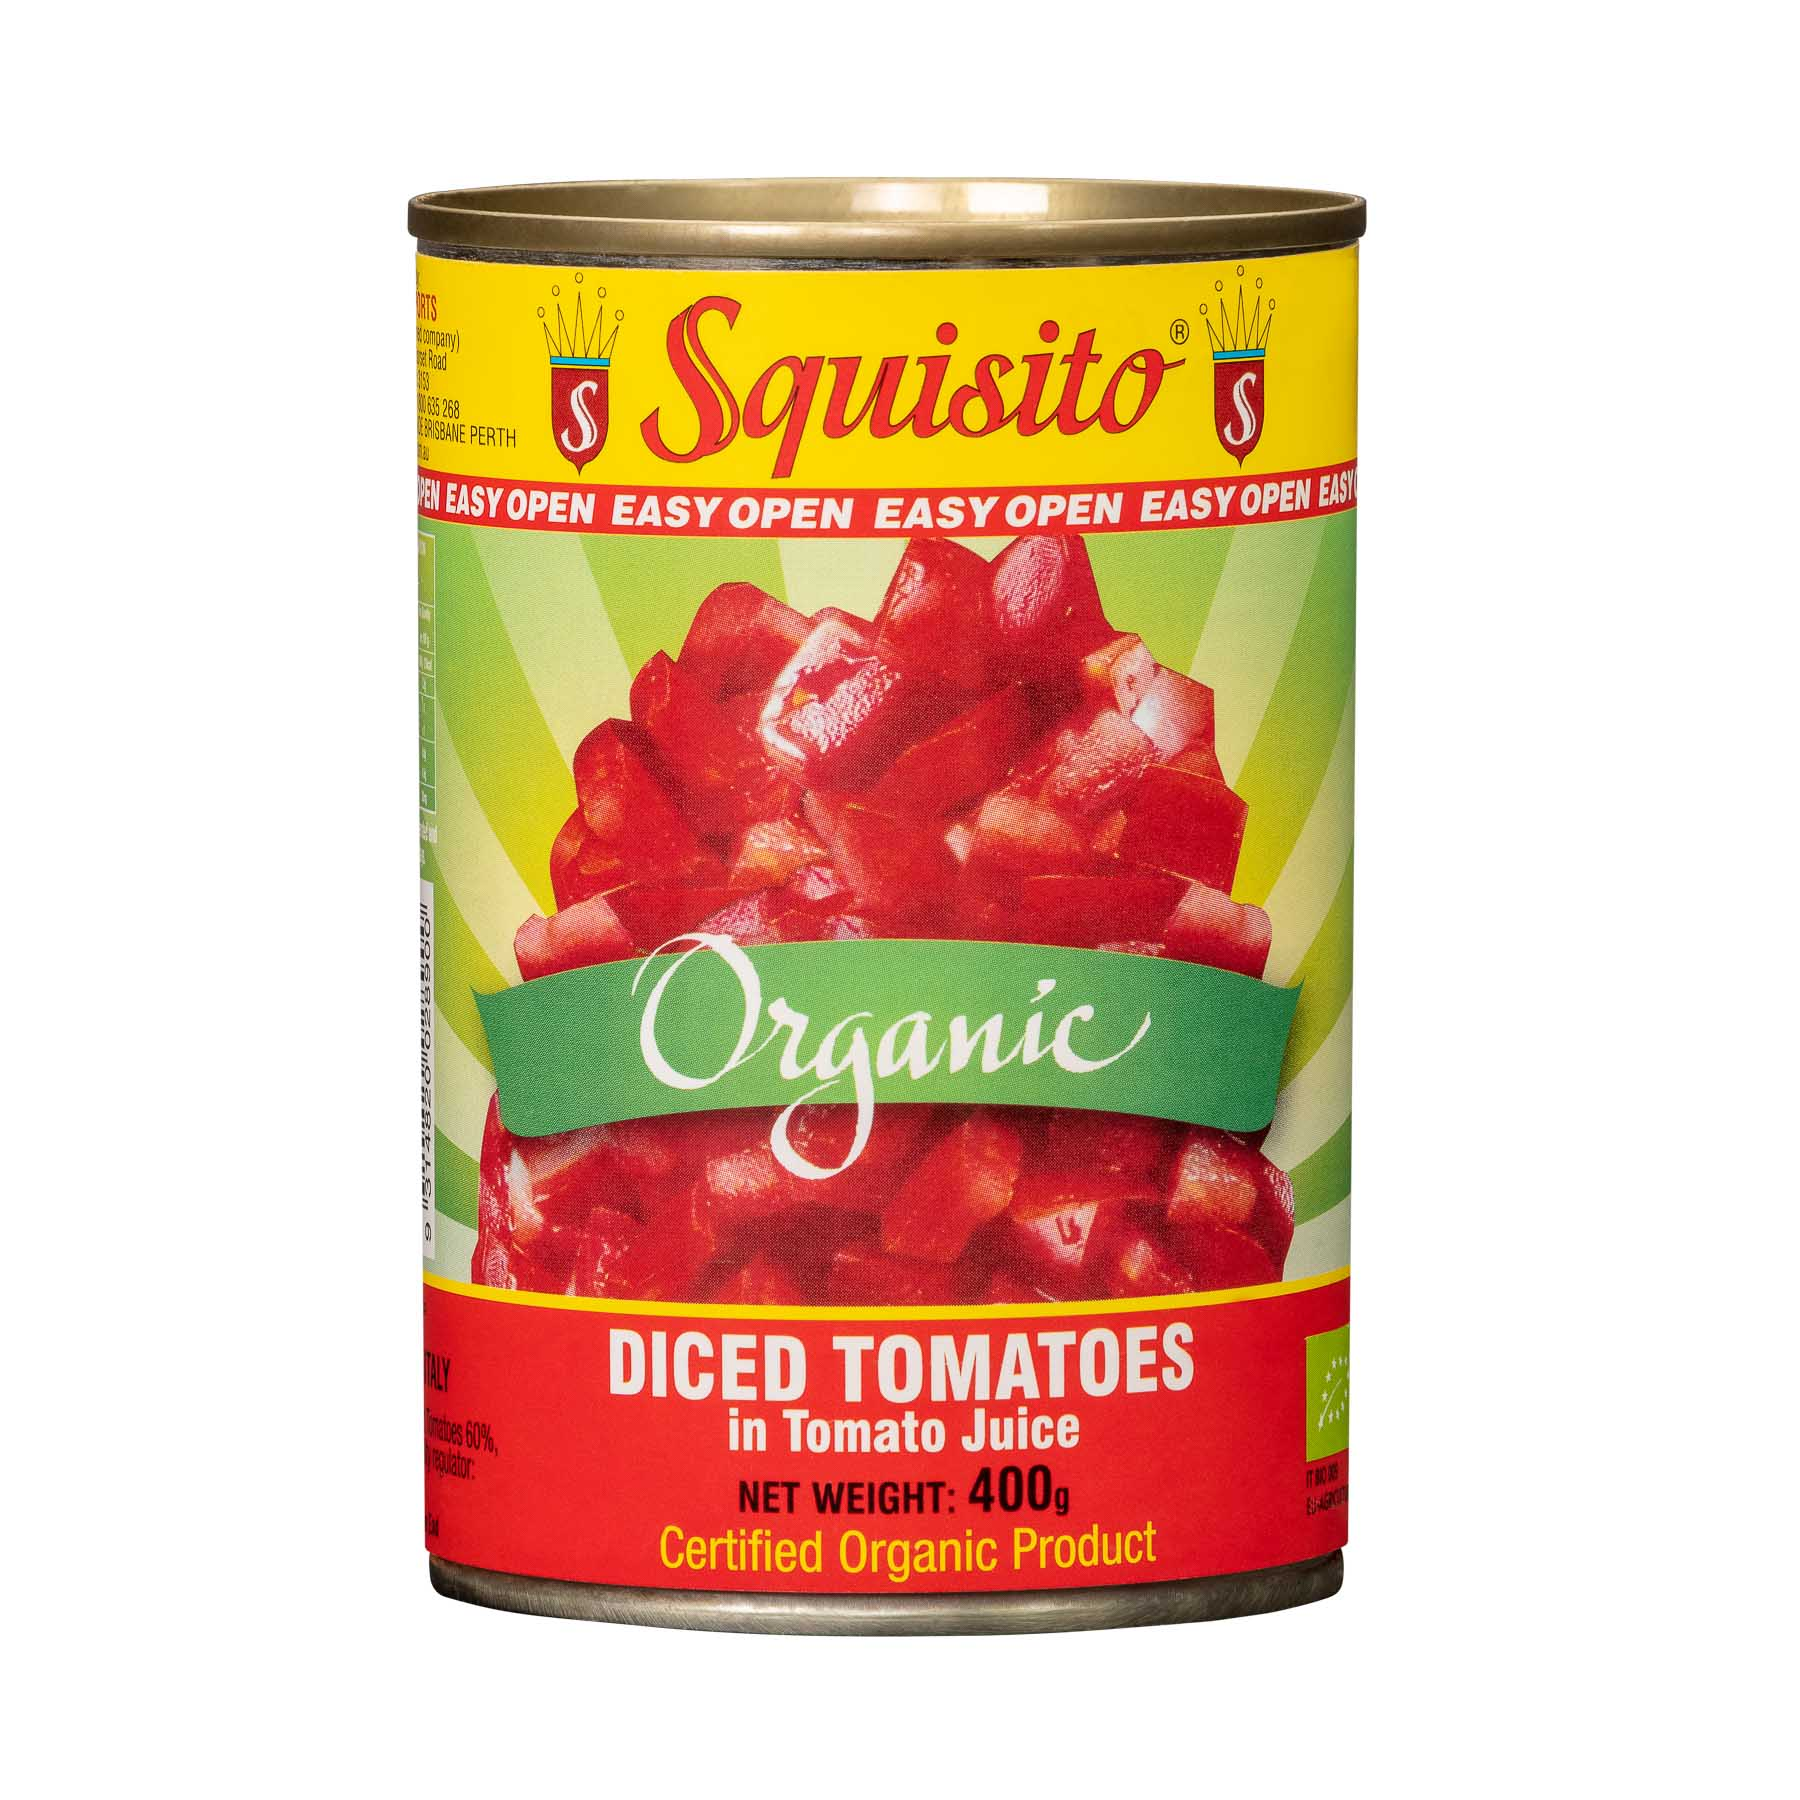 Organic Diced Tomatoes in Tomato Juice - Product Photography sample